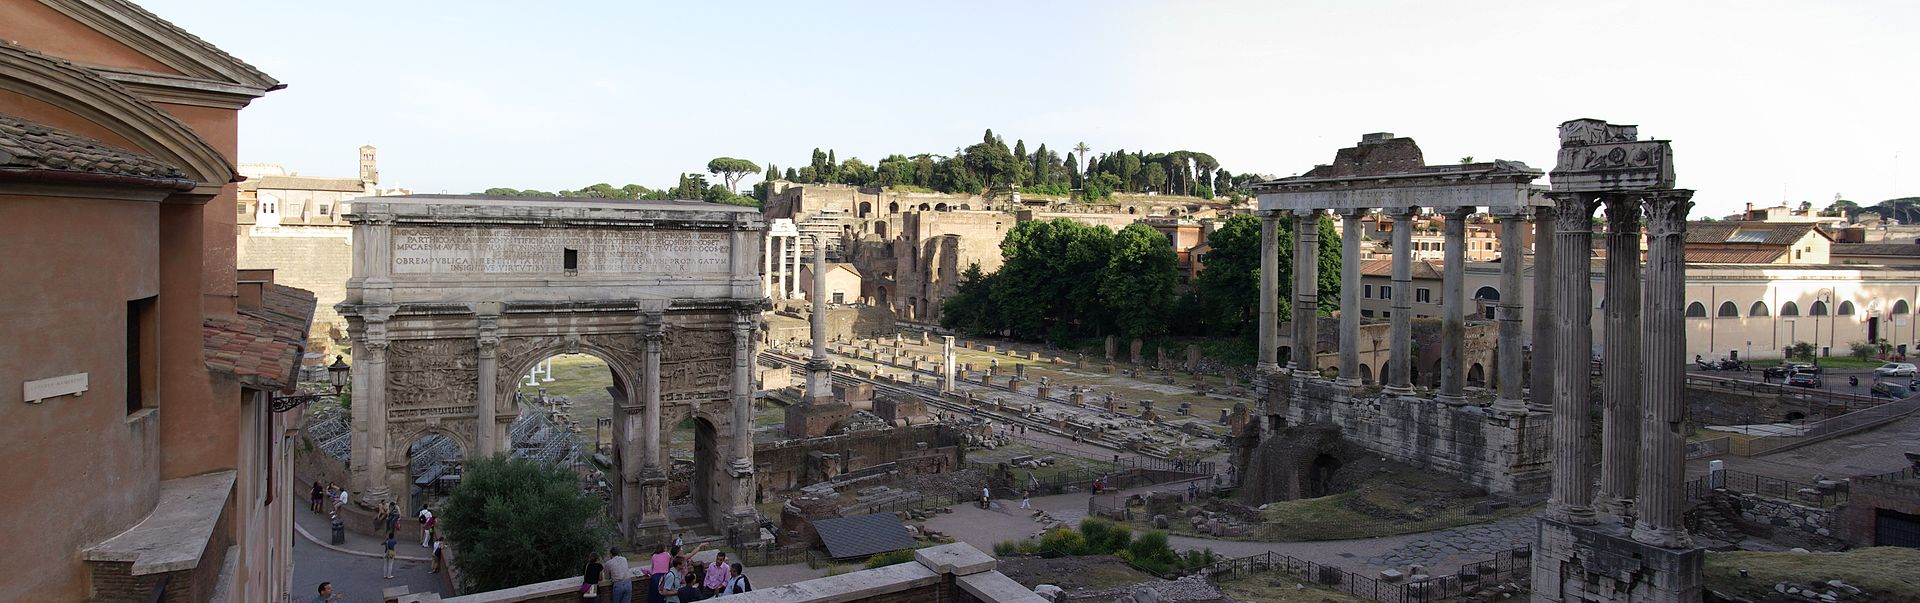 Ancient Roman Forum Ruins